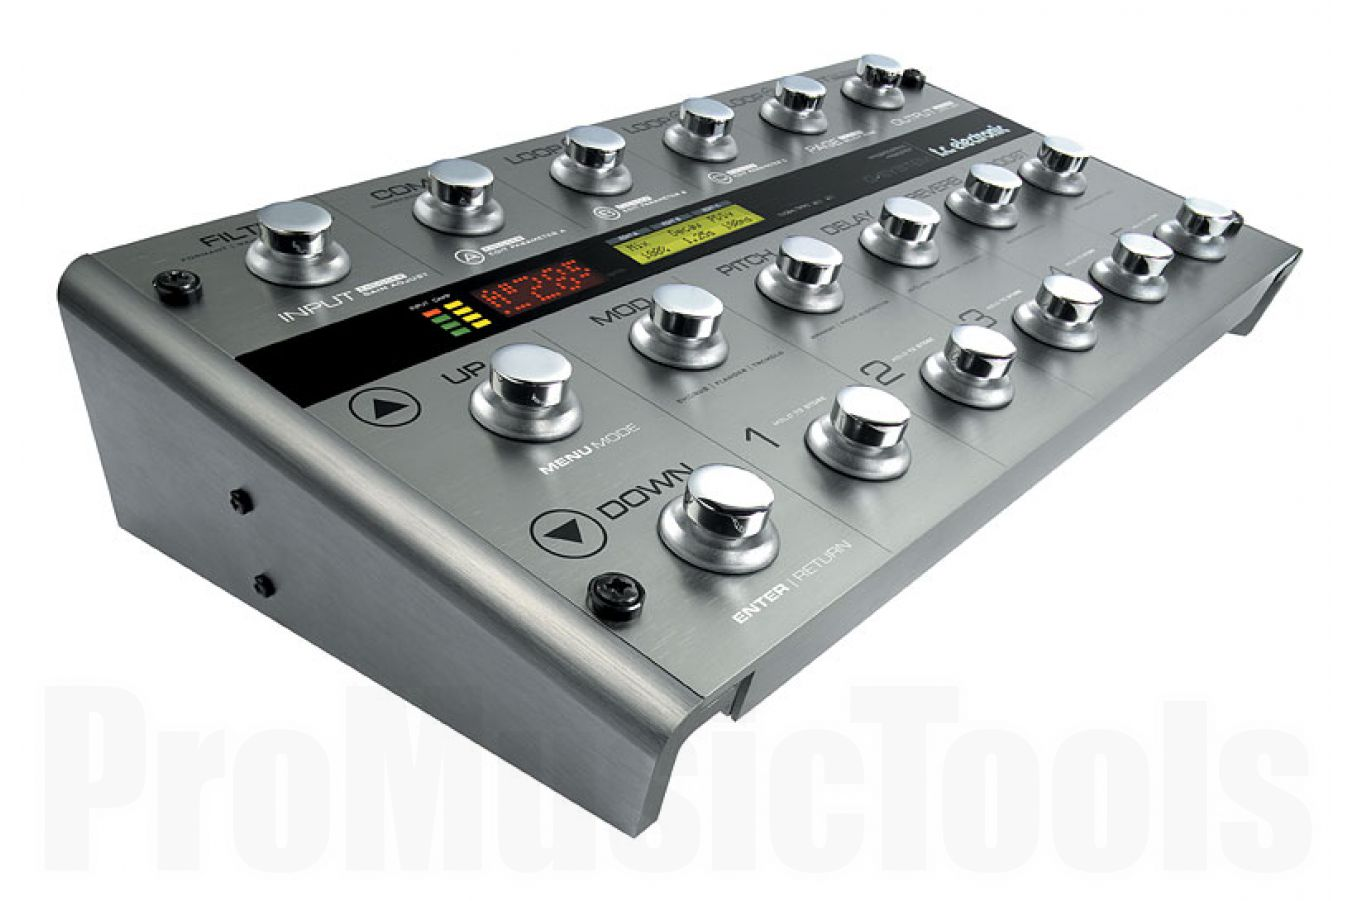 TC Electronic G-System Silver iB Modified version - demo